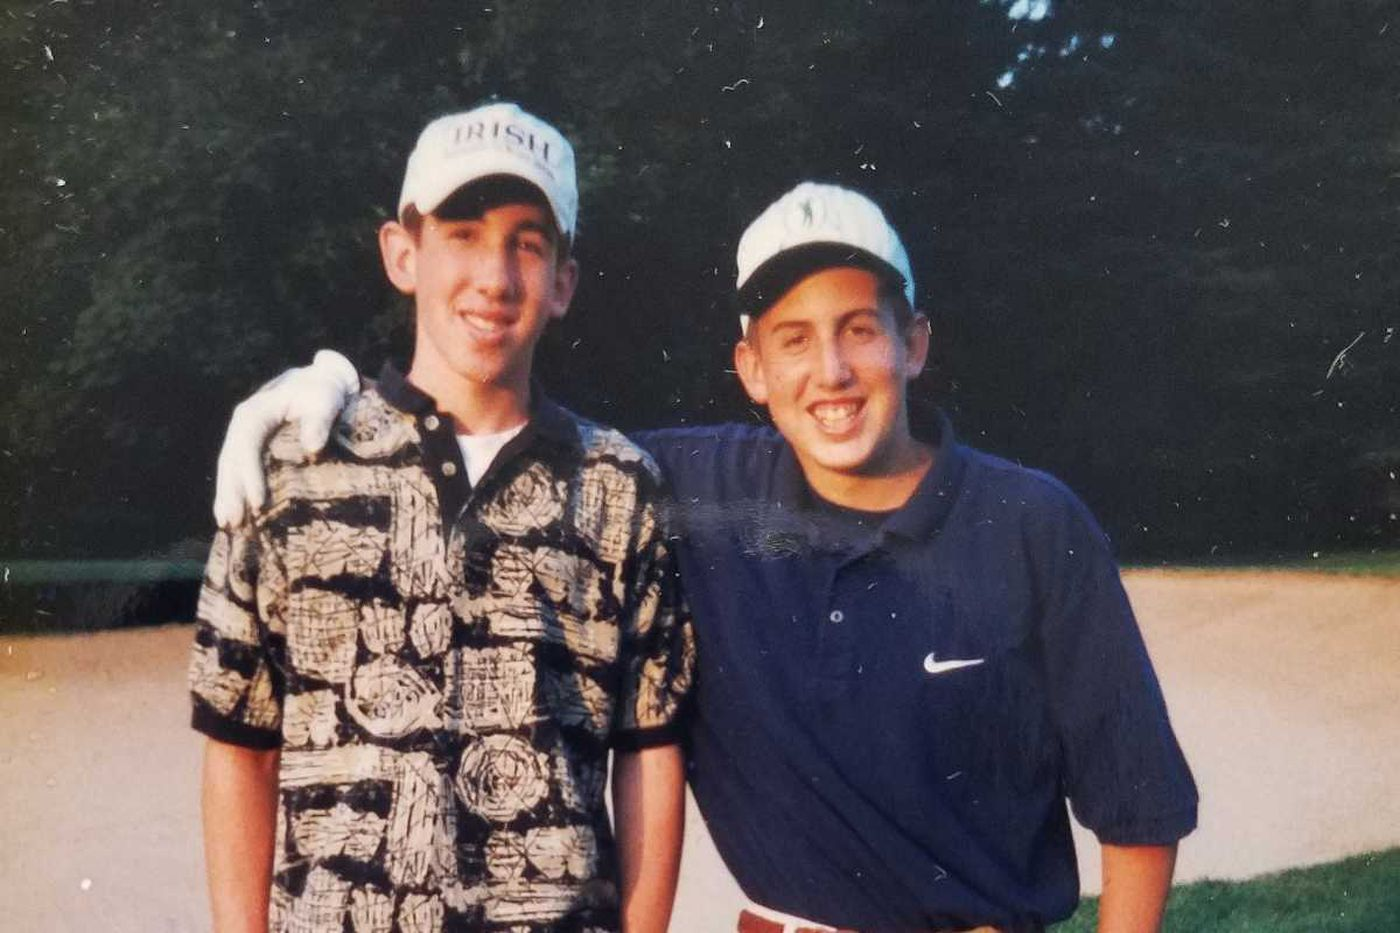 Life lessons learned as a caddie on a Glenside golf course